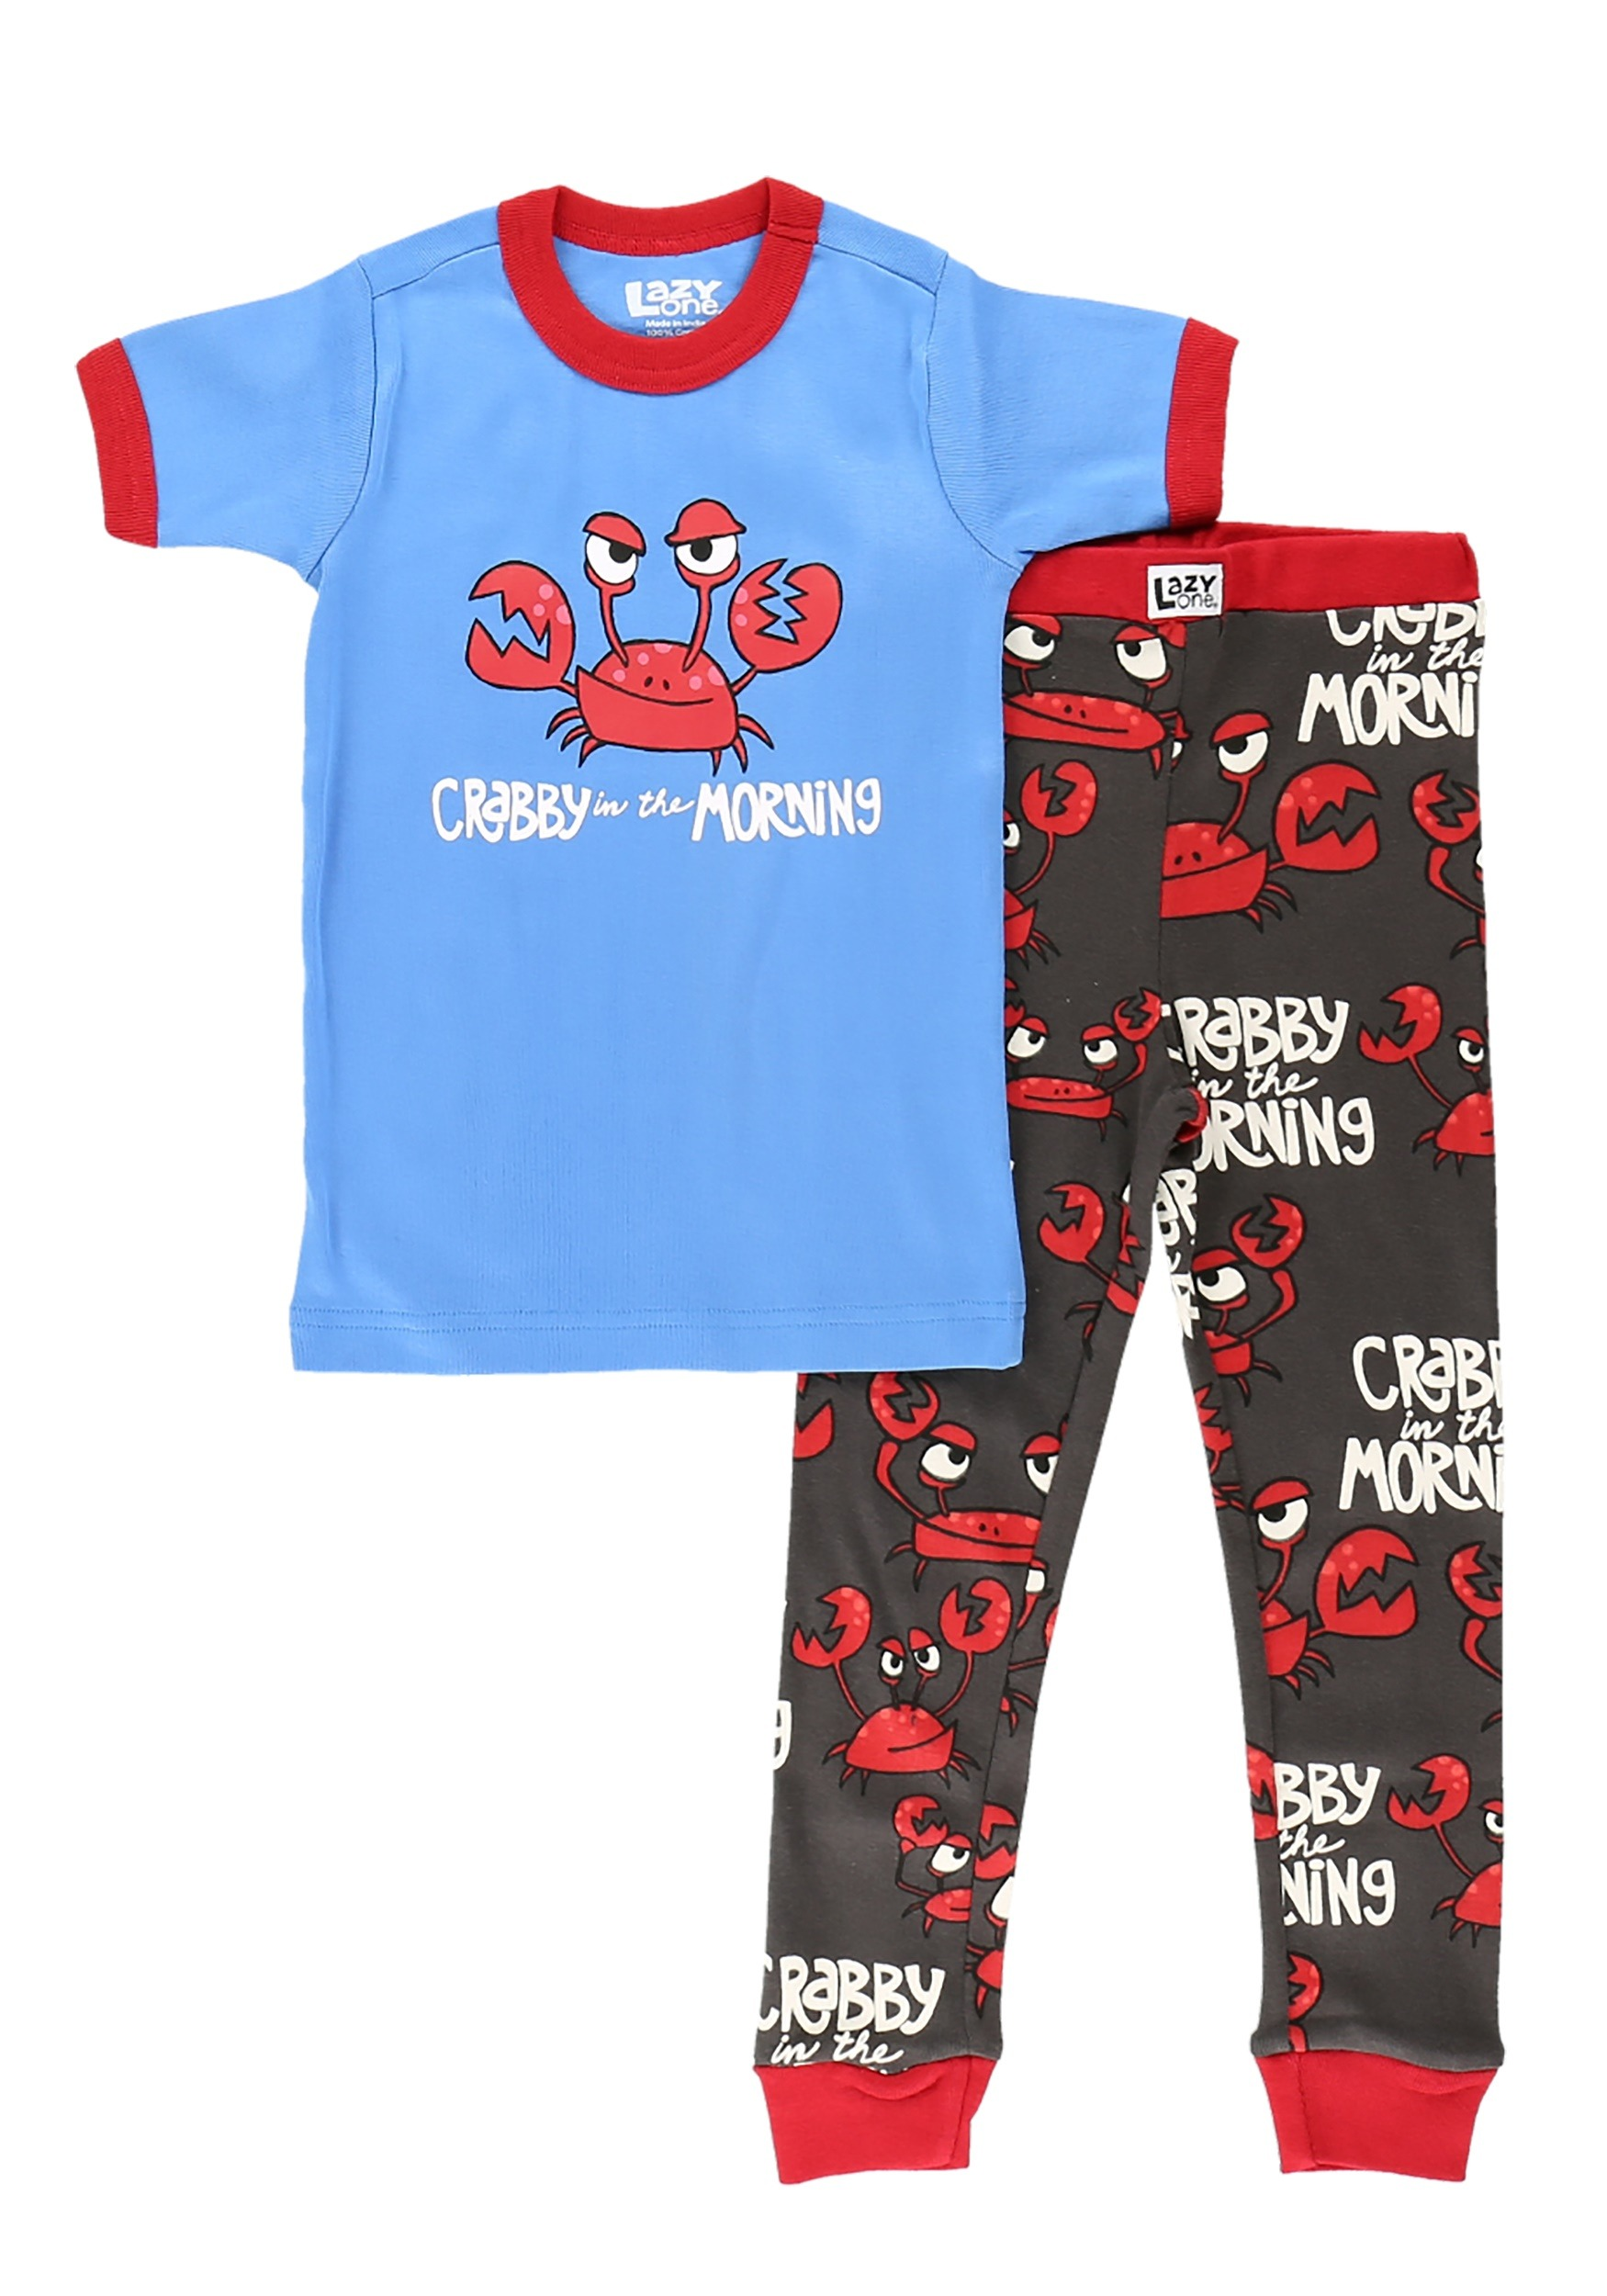 Crabby in the Morning Short Sleeve Pajama Set for Kids